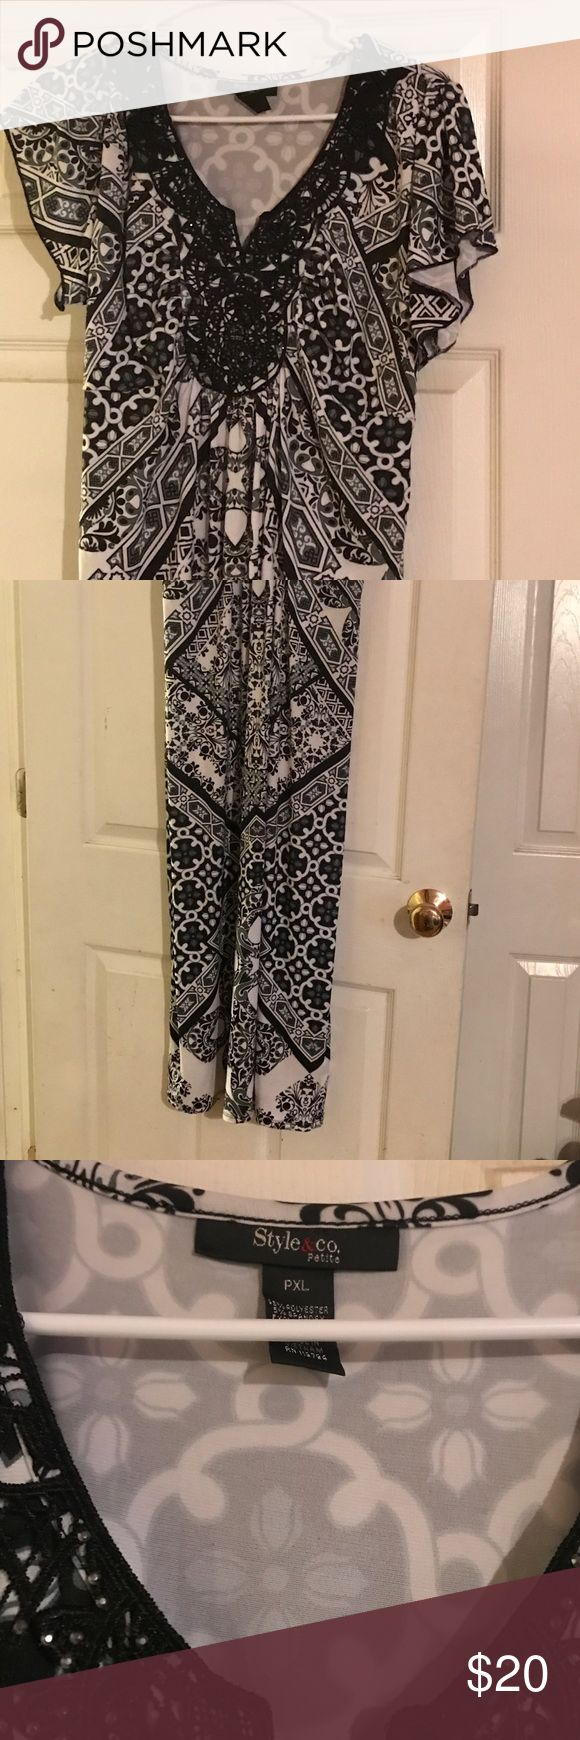 Woman's petite maxi dress Never been worn. No tags Style & Co Dresses Maxi